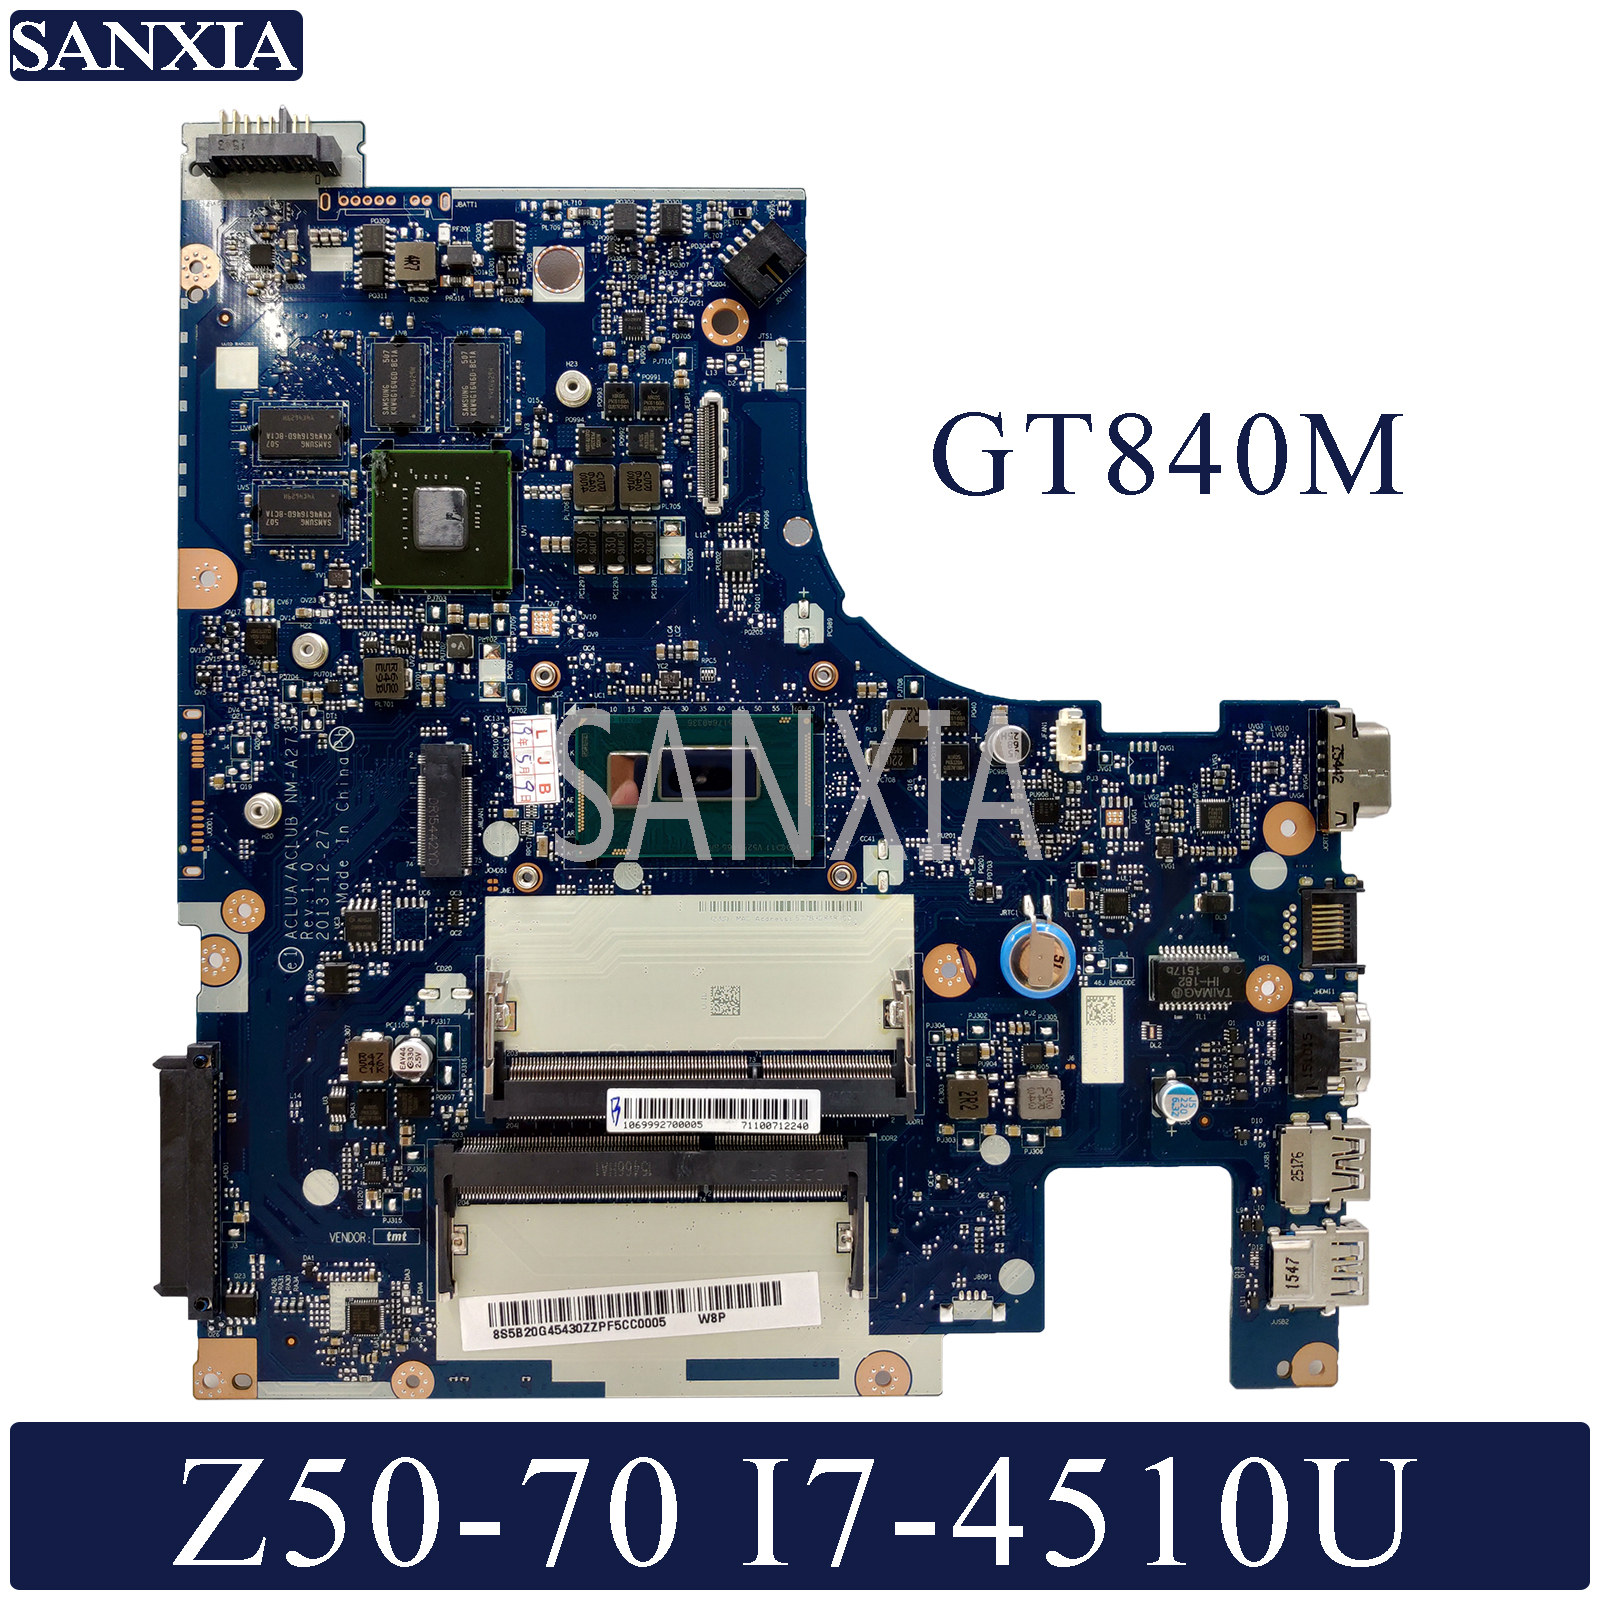 KEFU NM A273 Laptop motherboard for Lenovo Z50 70 Test original mainboard I7 4510U GT840M